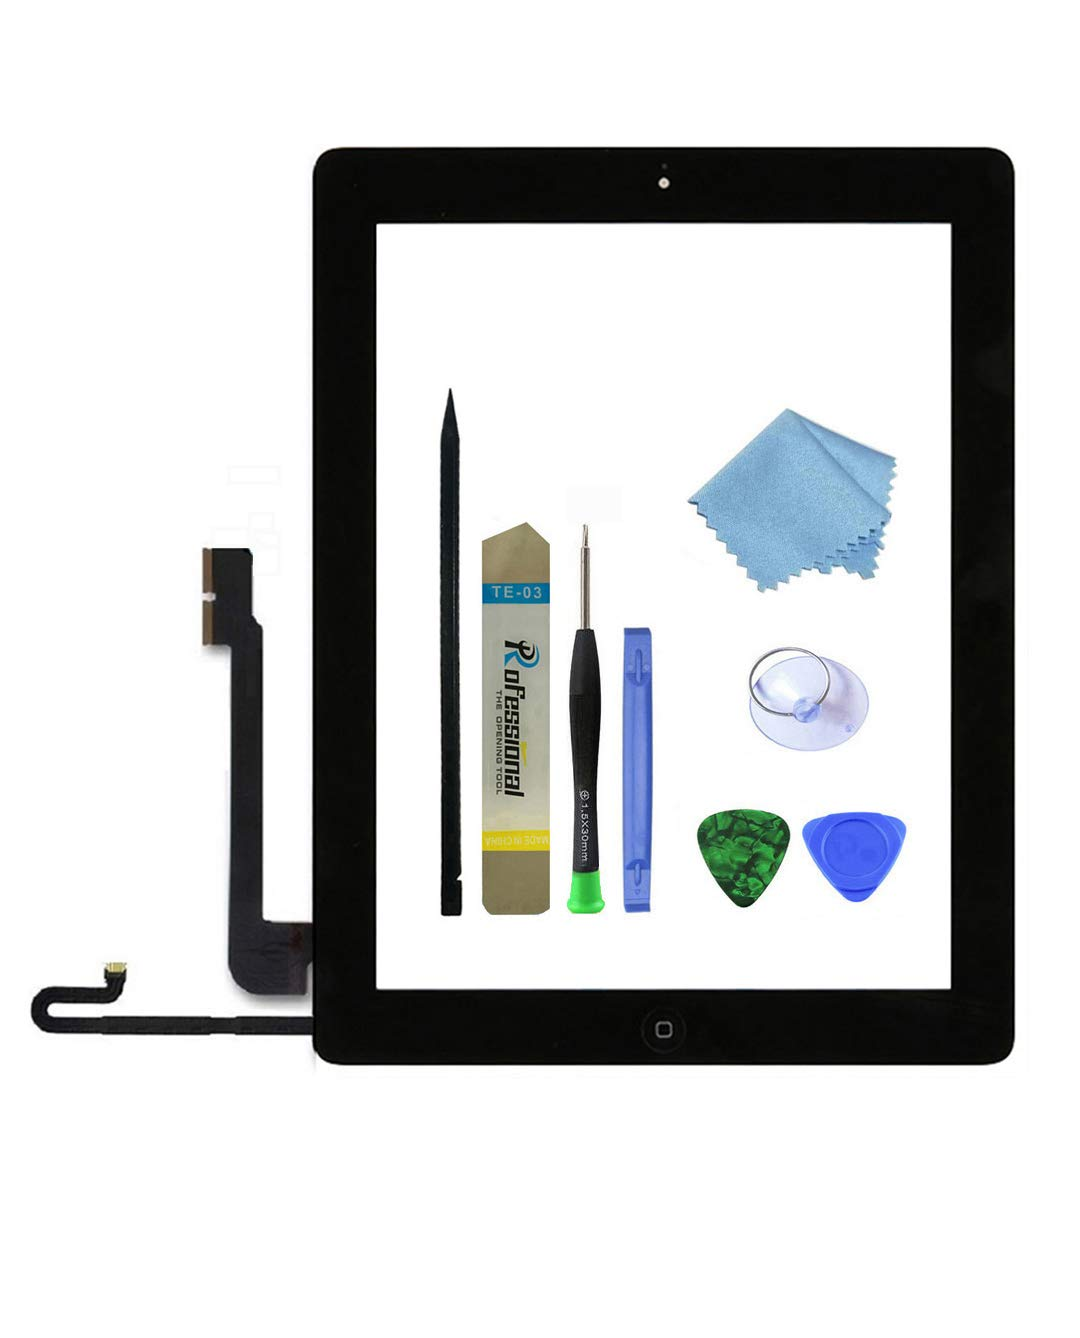 Zentop Touch Screen Digitizer replacement Assembly for Black iPad 4 Model A1458, A1459, A1460 whith Home Button, Camera Holder ,Preinstalled Adhesive,Frame Bezel, tool Kit.